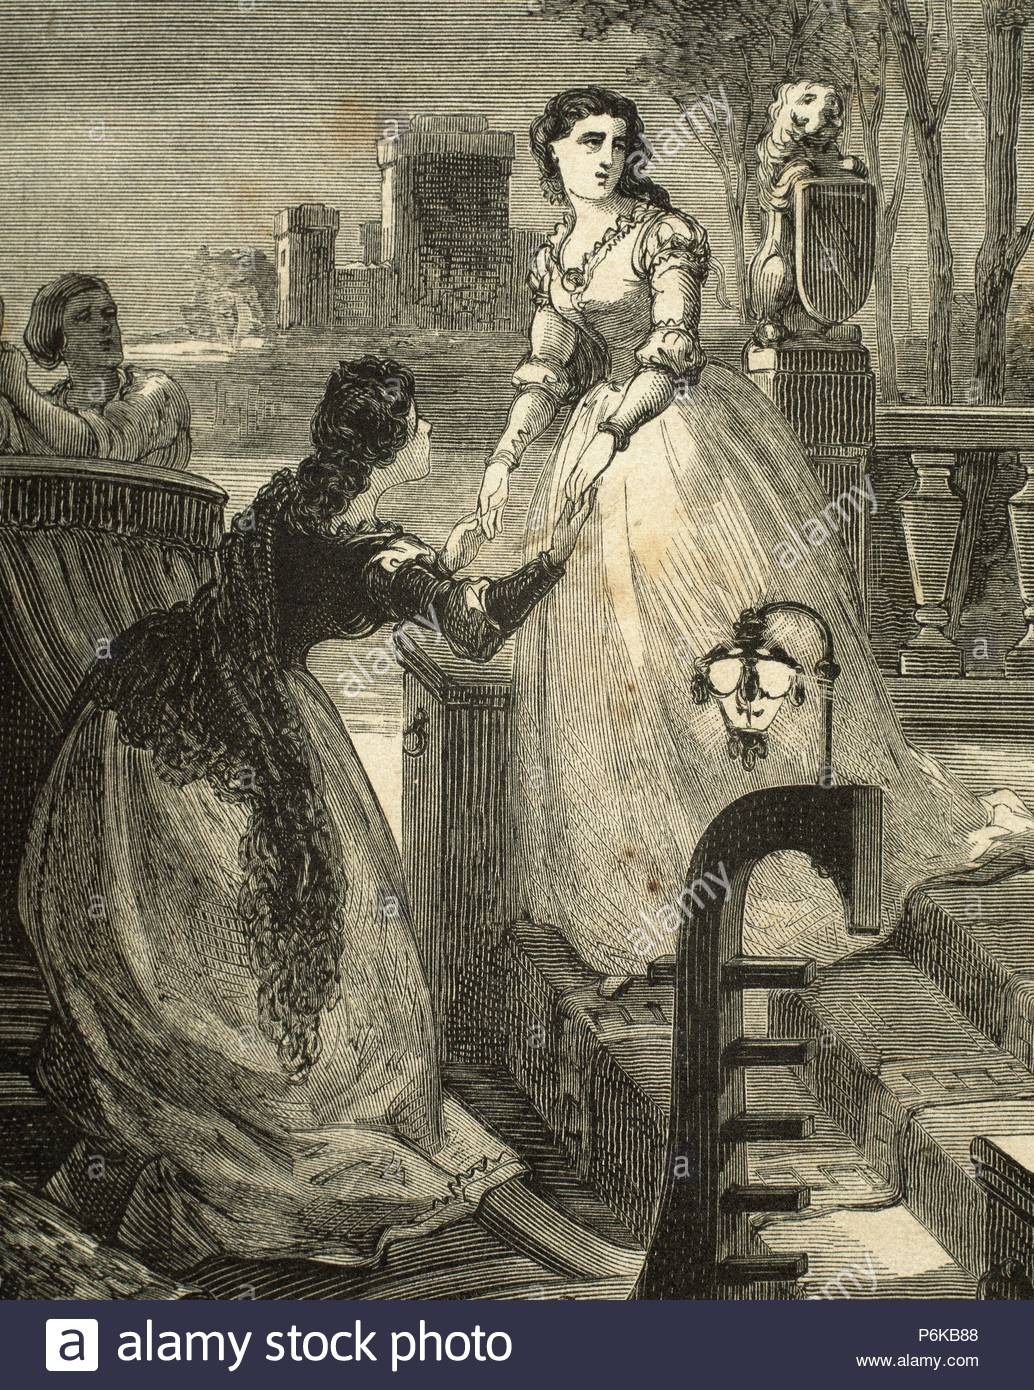 William Shakespeare (1564-1616). English writer. Romeo and Juliet.  Adventures of a night. Engraving by Gomez, 1868.